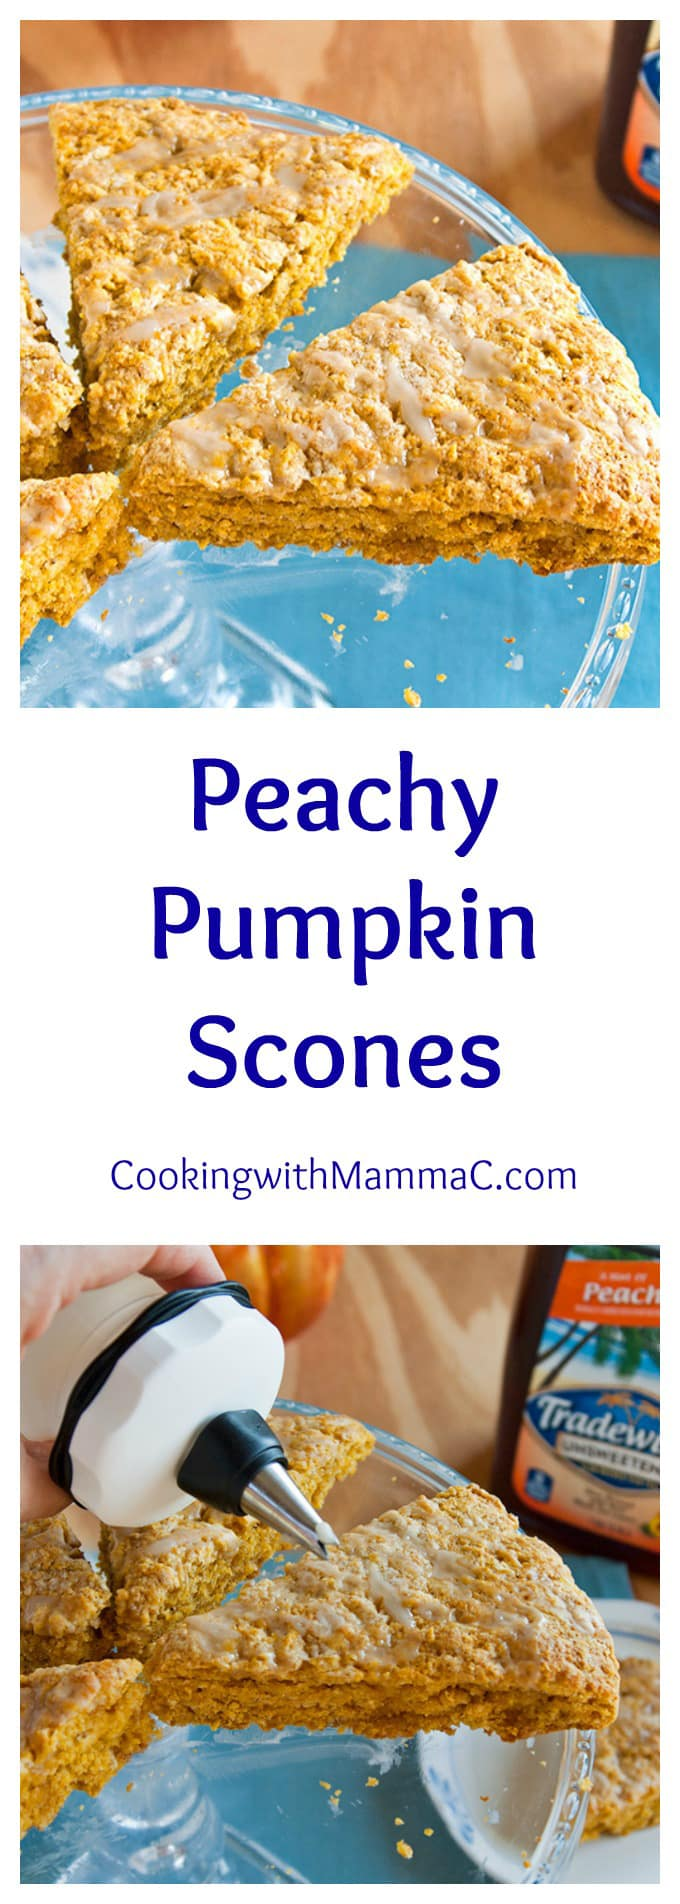 Peachy Pumpkin Scones - You don't have to love pumpkin to love these tender scones with a peach tea glaze! Perfect for breakfast or a snack. #sponsored #MomentstoSavor @TradwindsTea